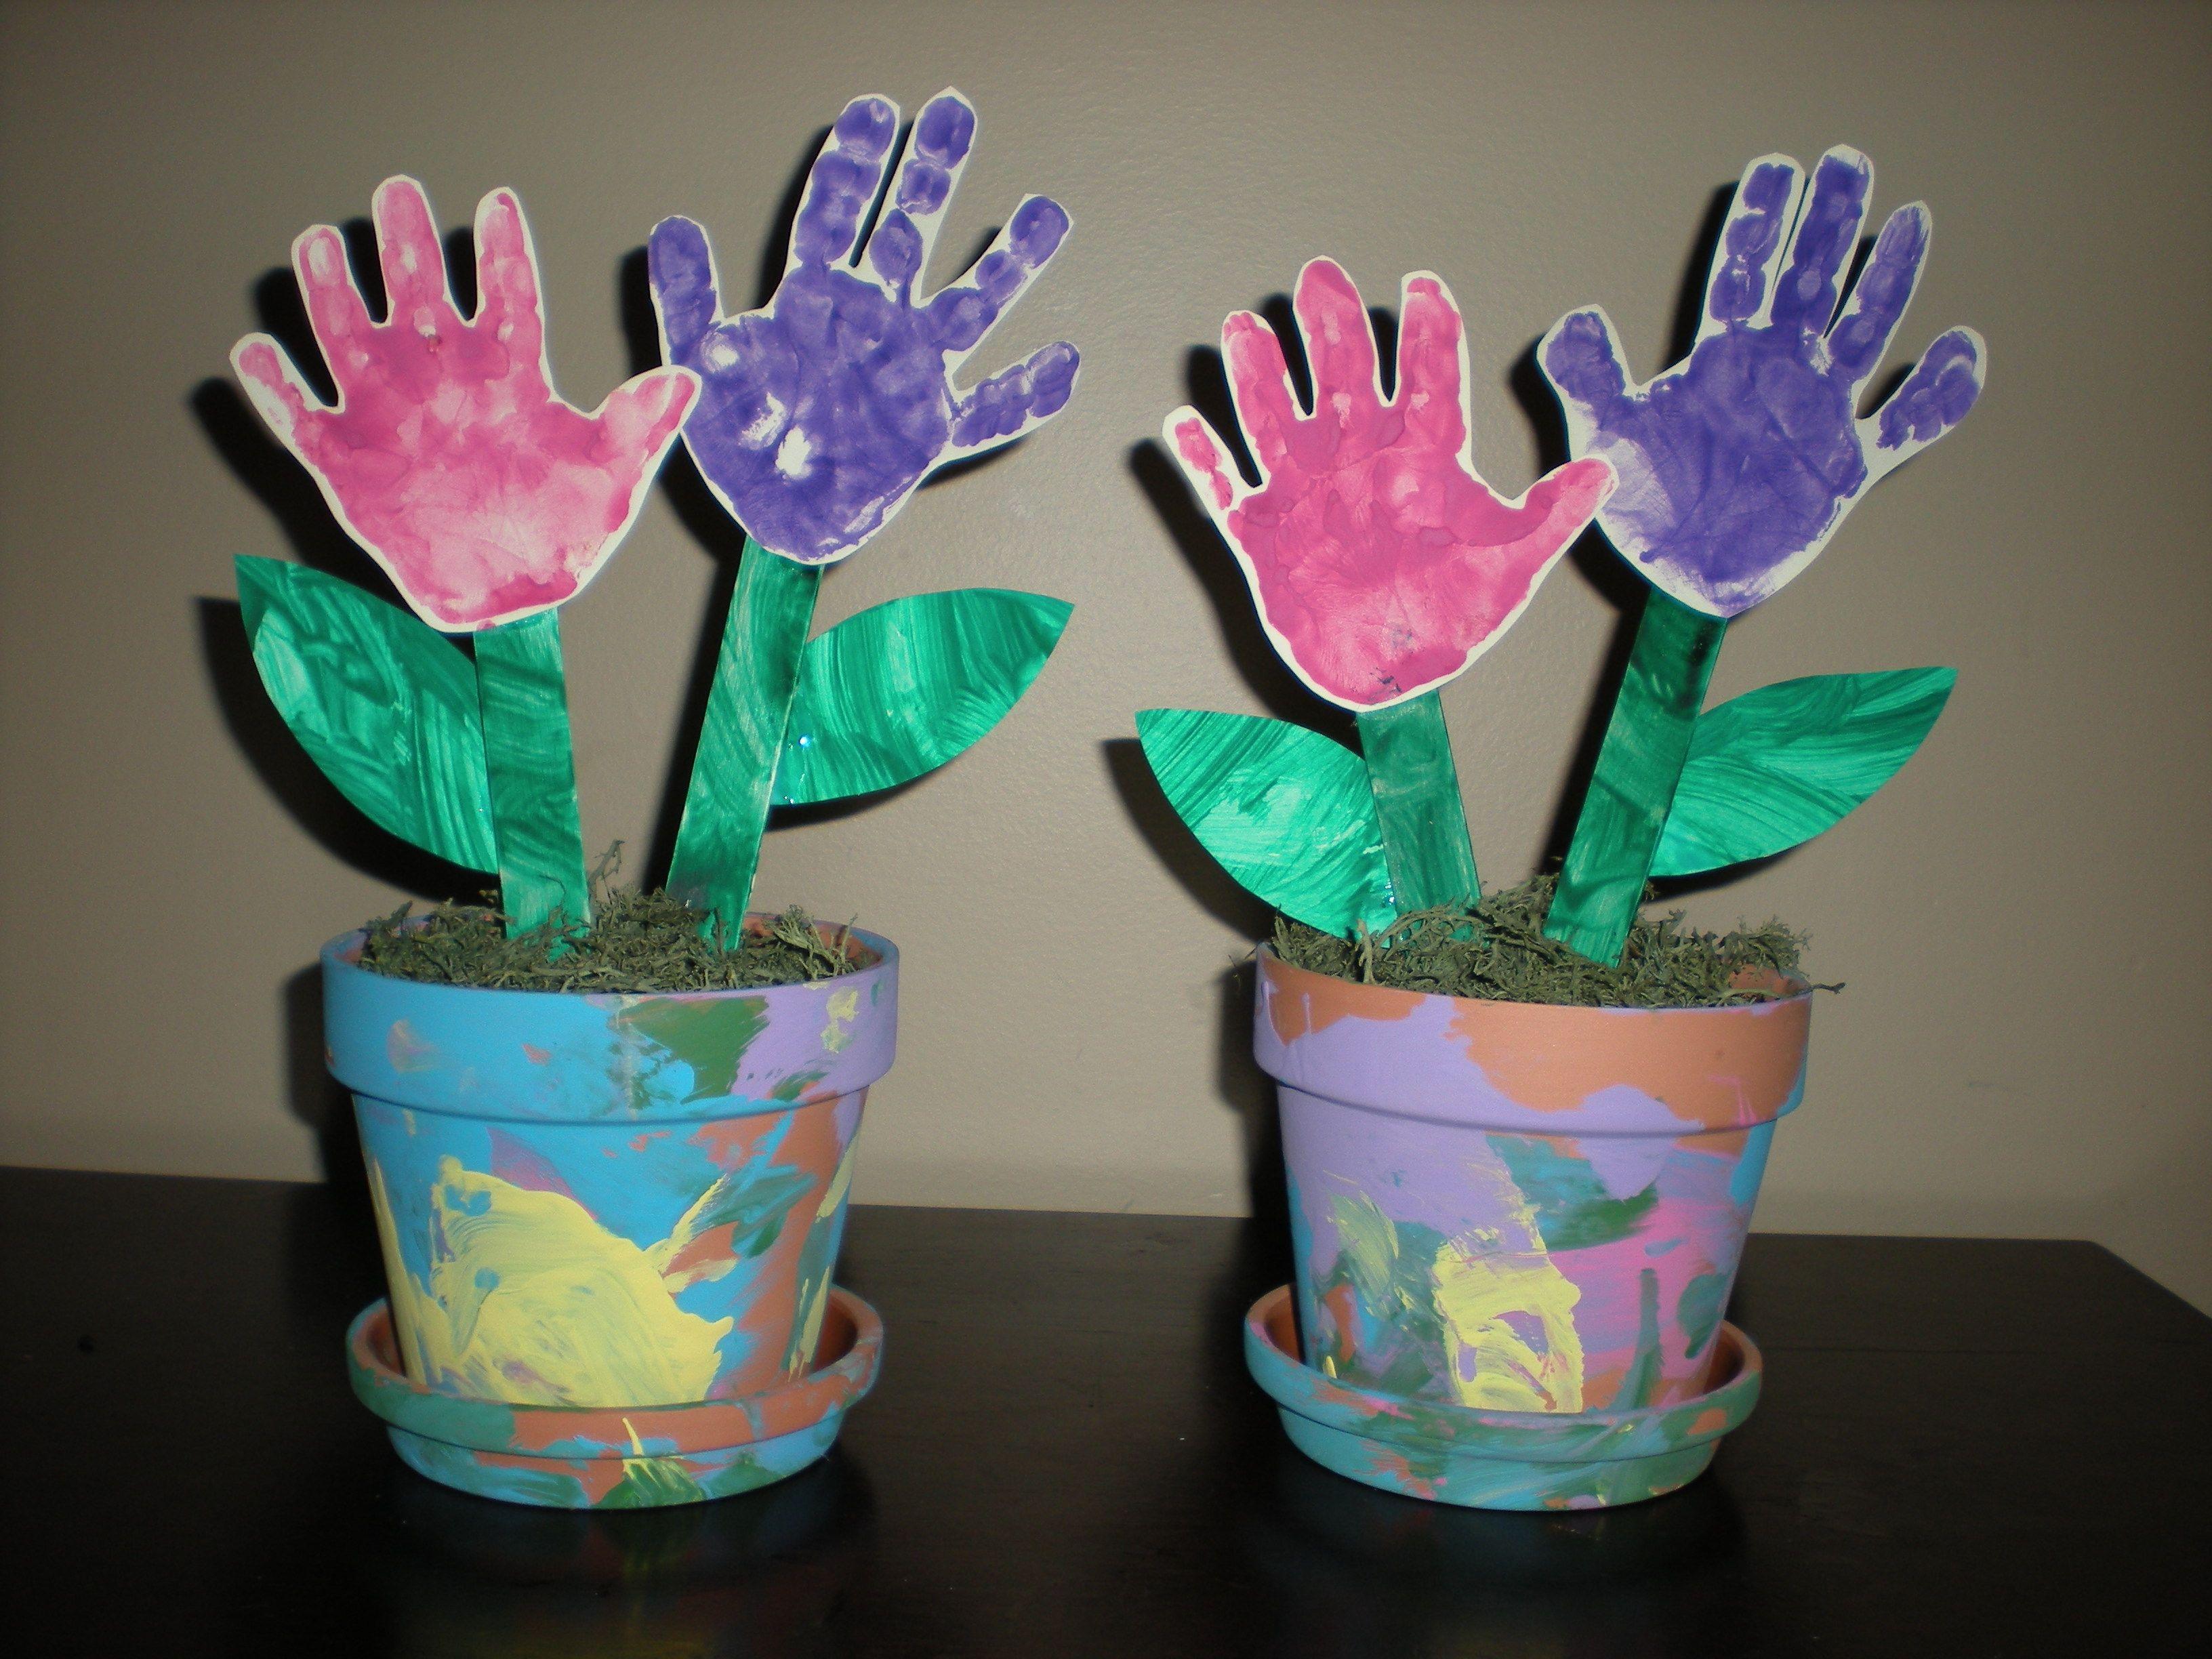 Crafts for a 3 year old - The Mother S Day Gift My Three Year Old And I Put Together For The Grandma S